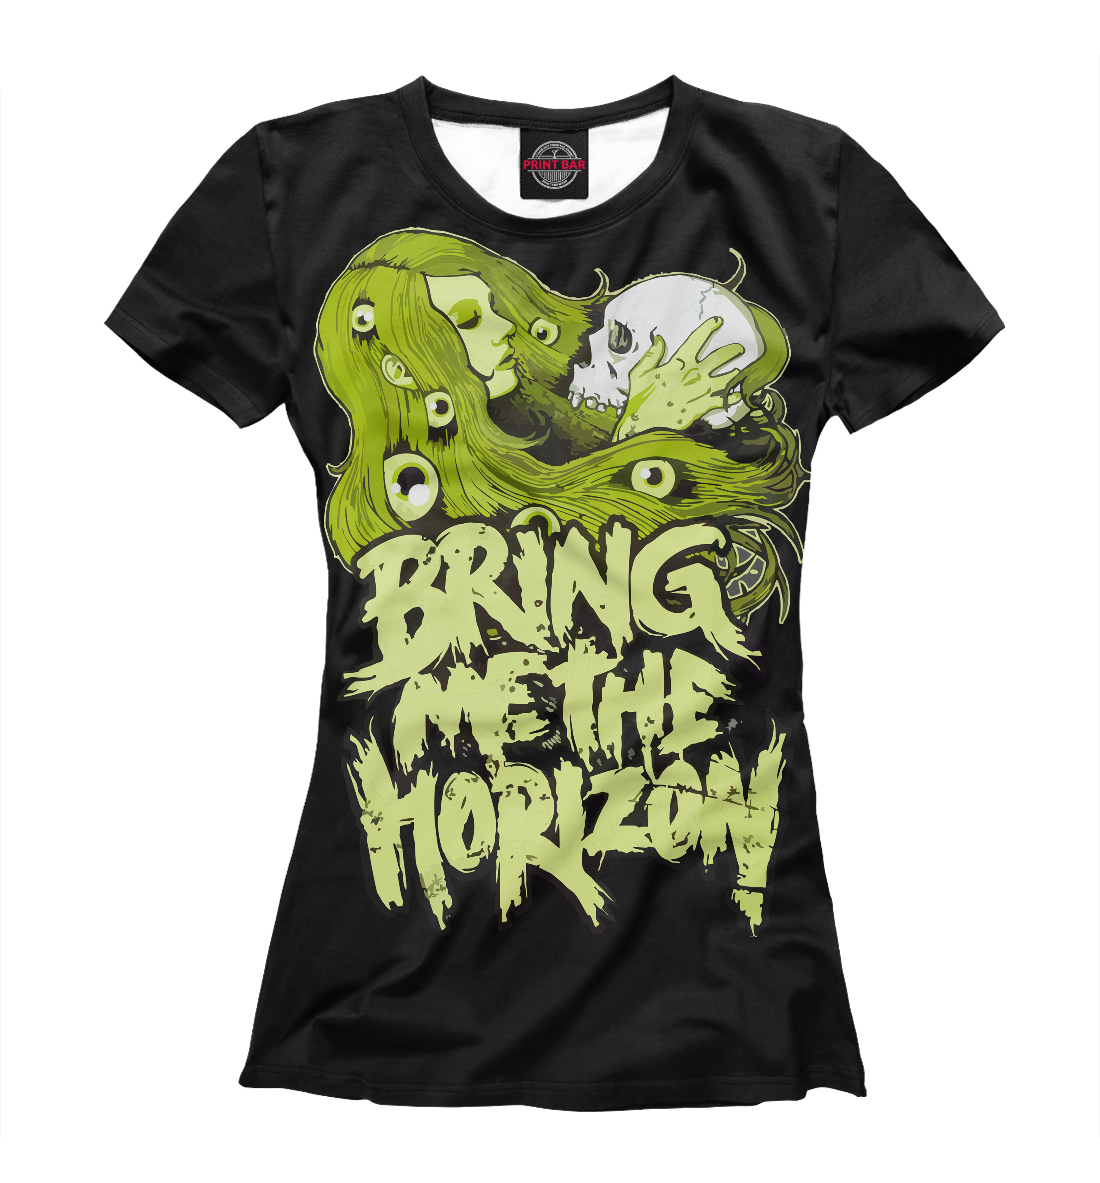 Купить Bring Me the Horizon, Printbar, Футболки, BRI-799231-fut-1